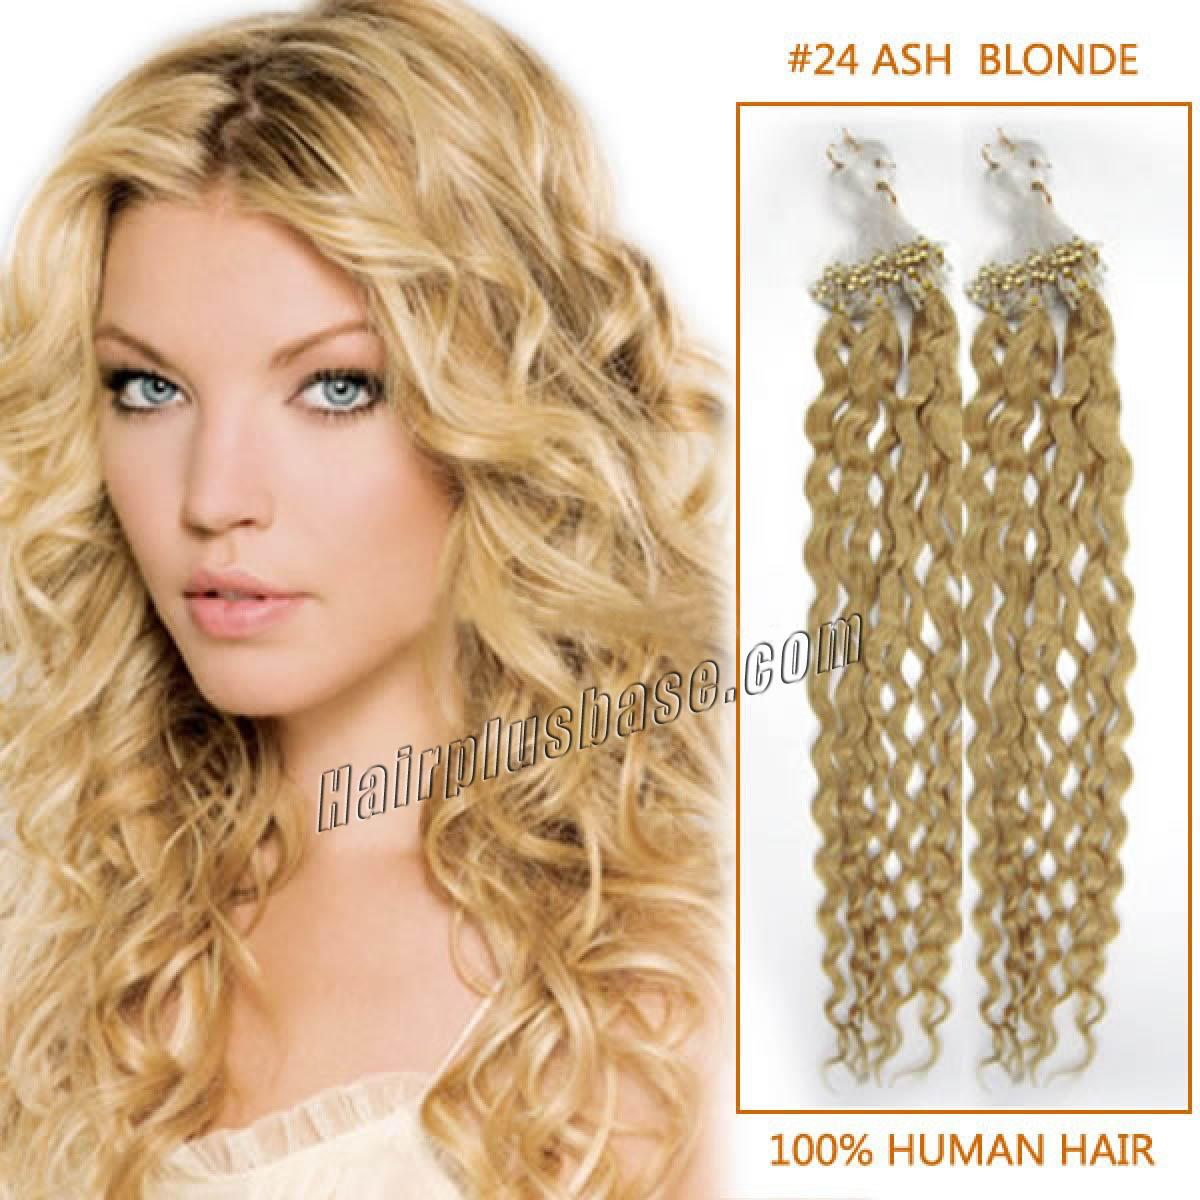 20 Inch 24 Ash Blonde Curly Micro Loop Human Hair